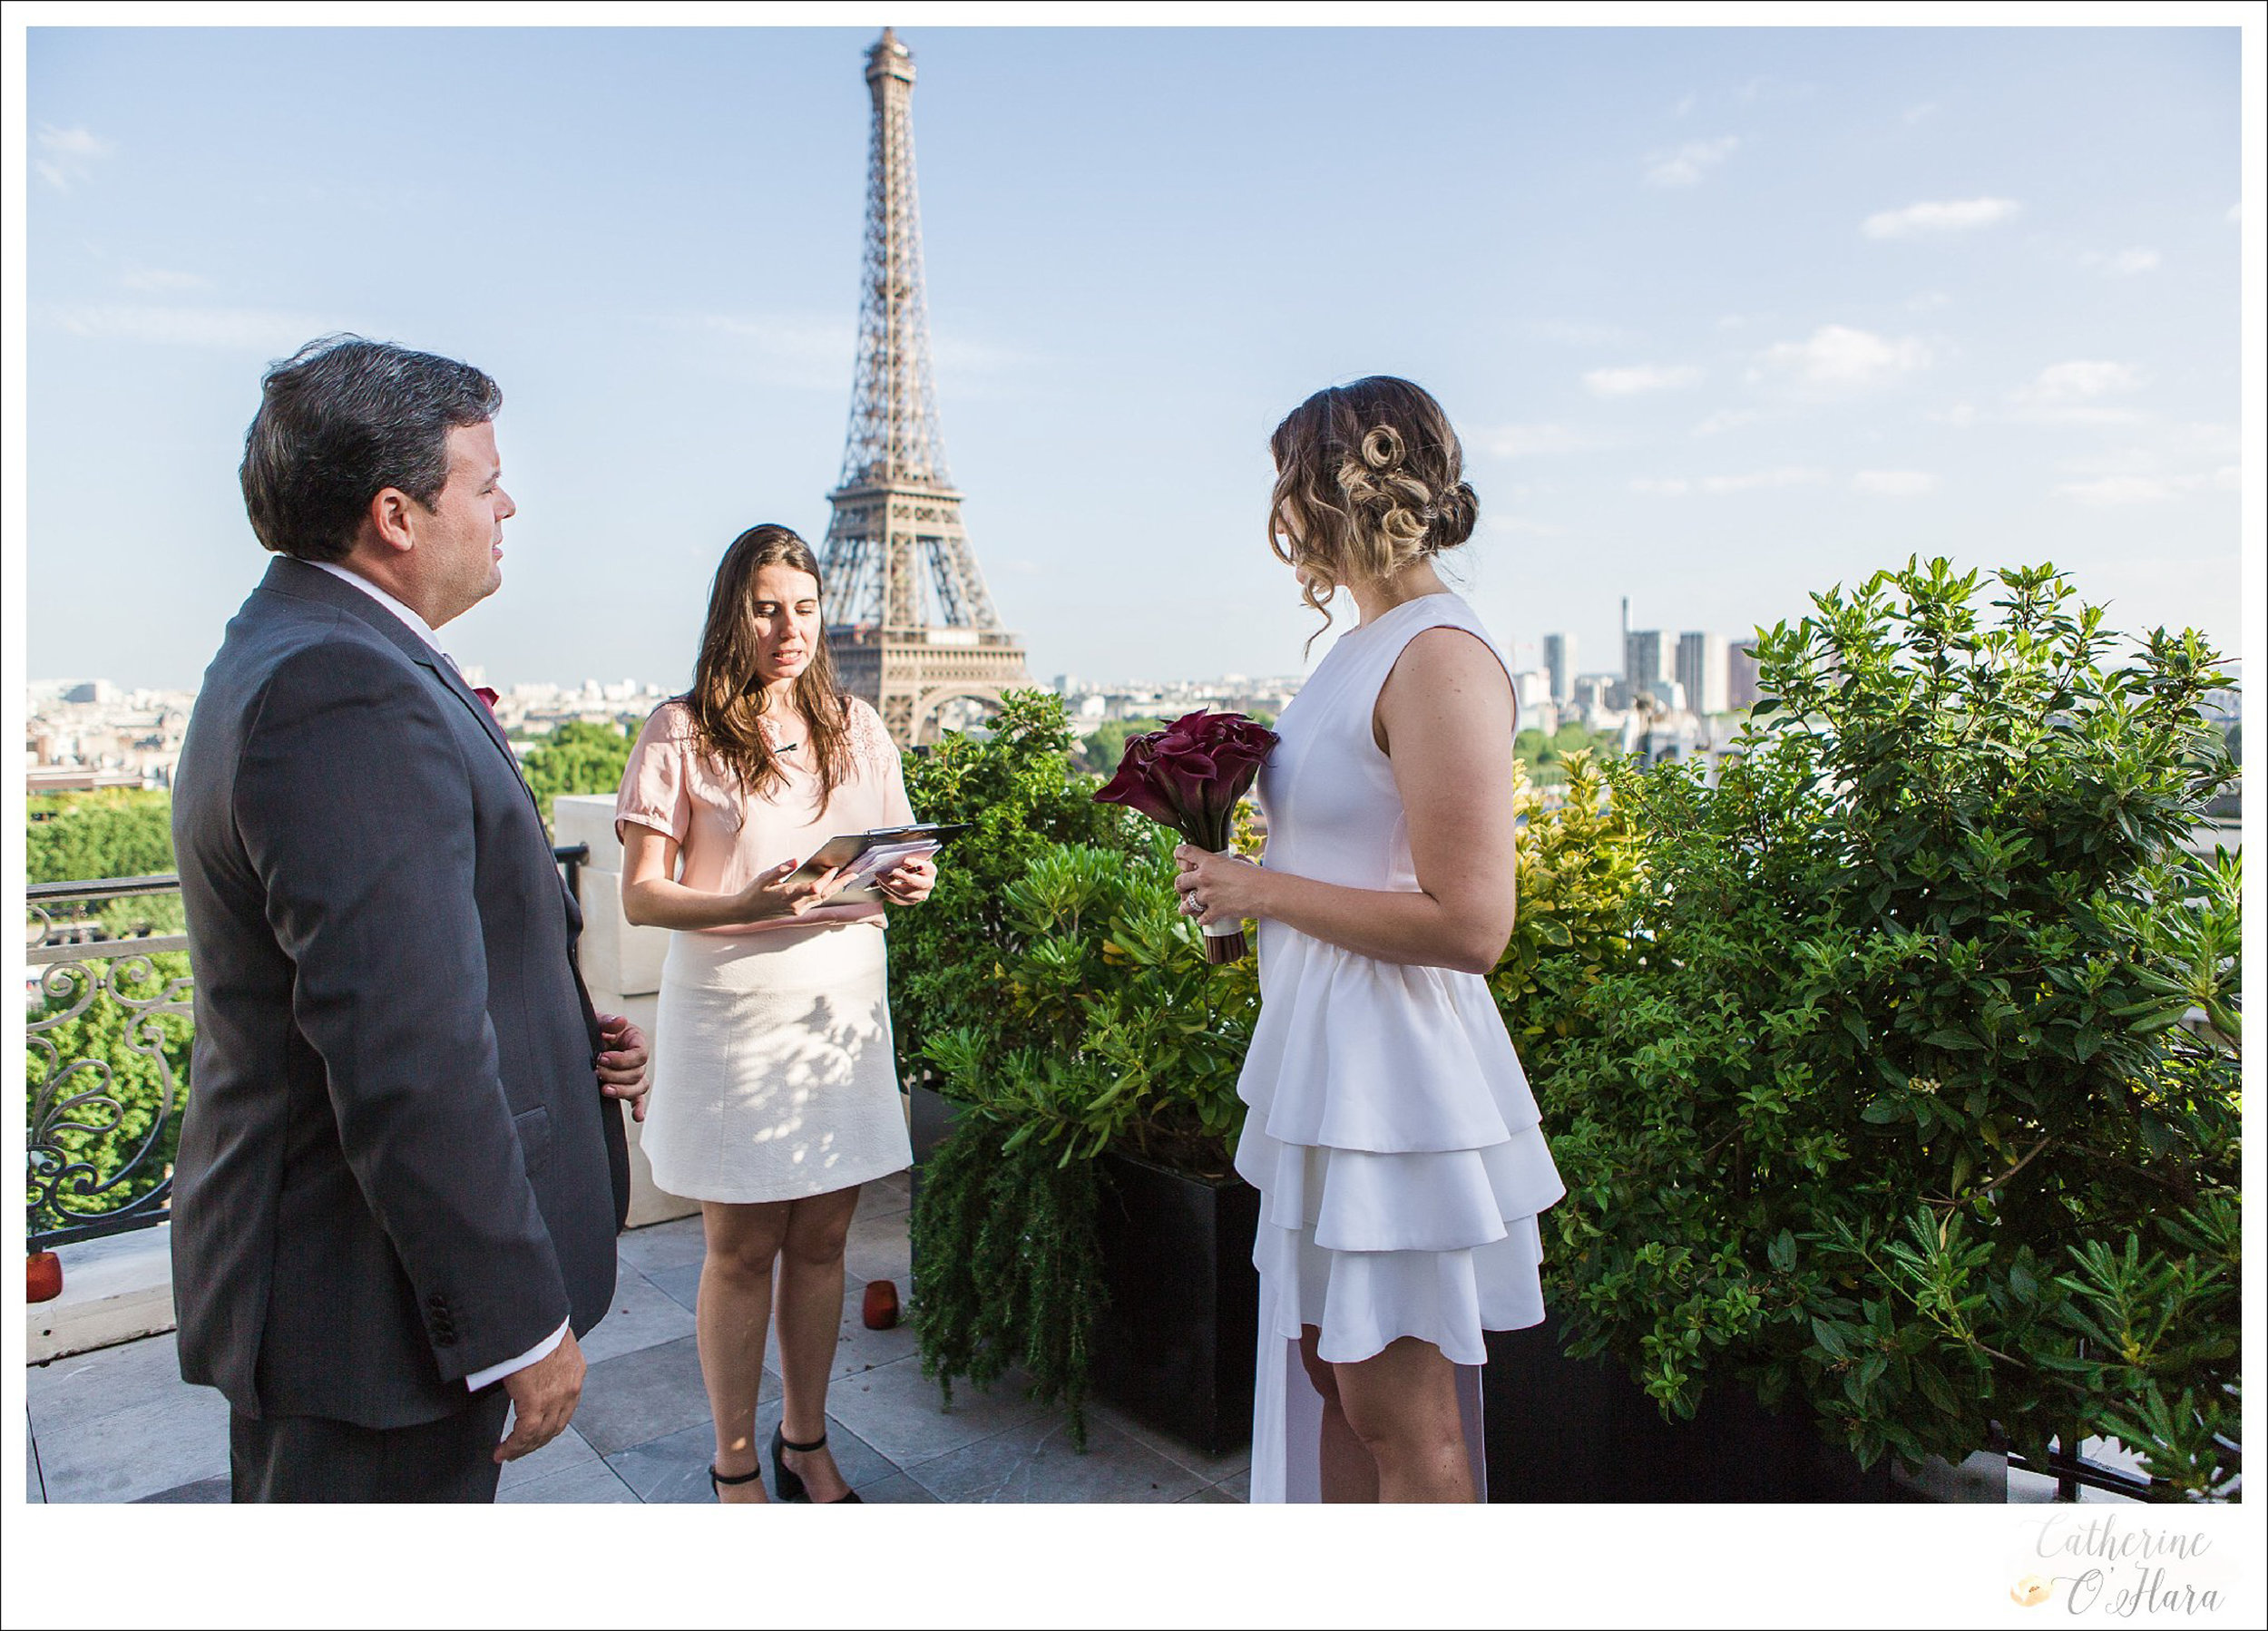 20-paris-france-elopement-photographer.jpg